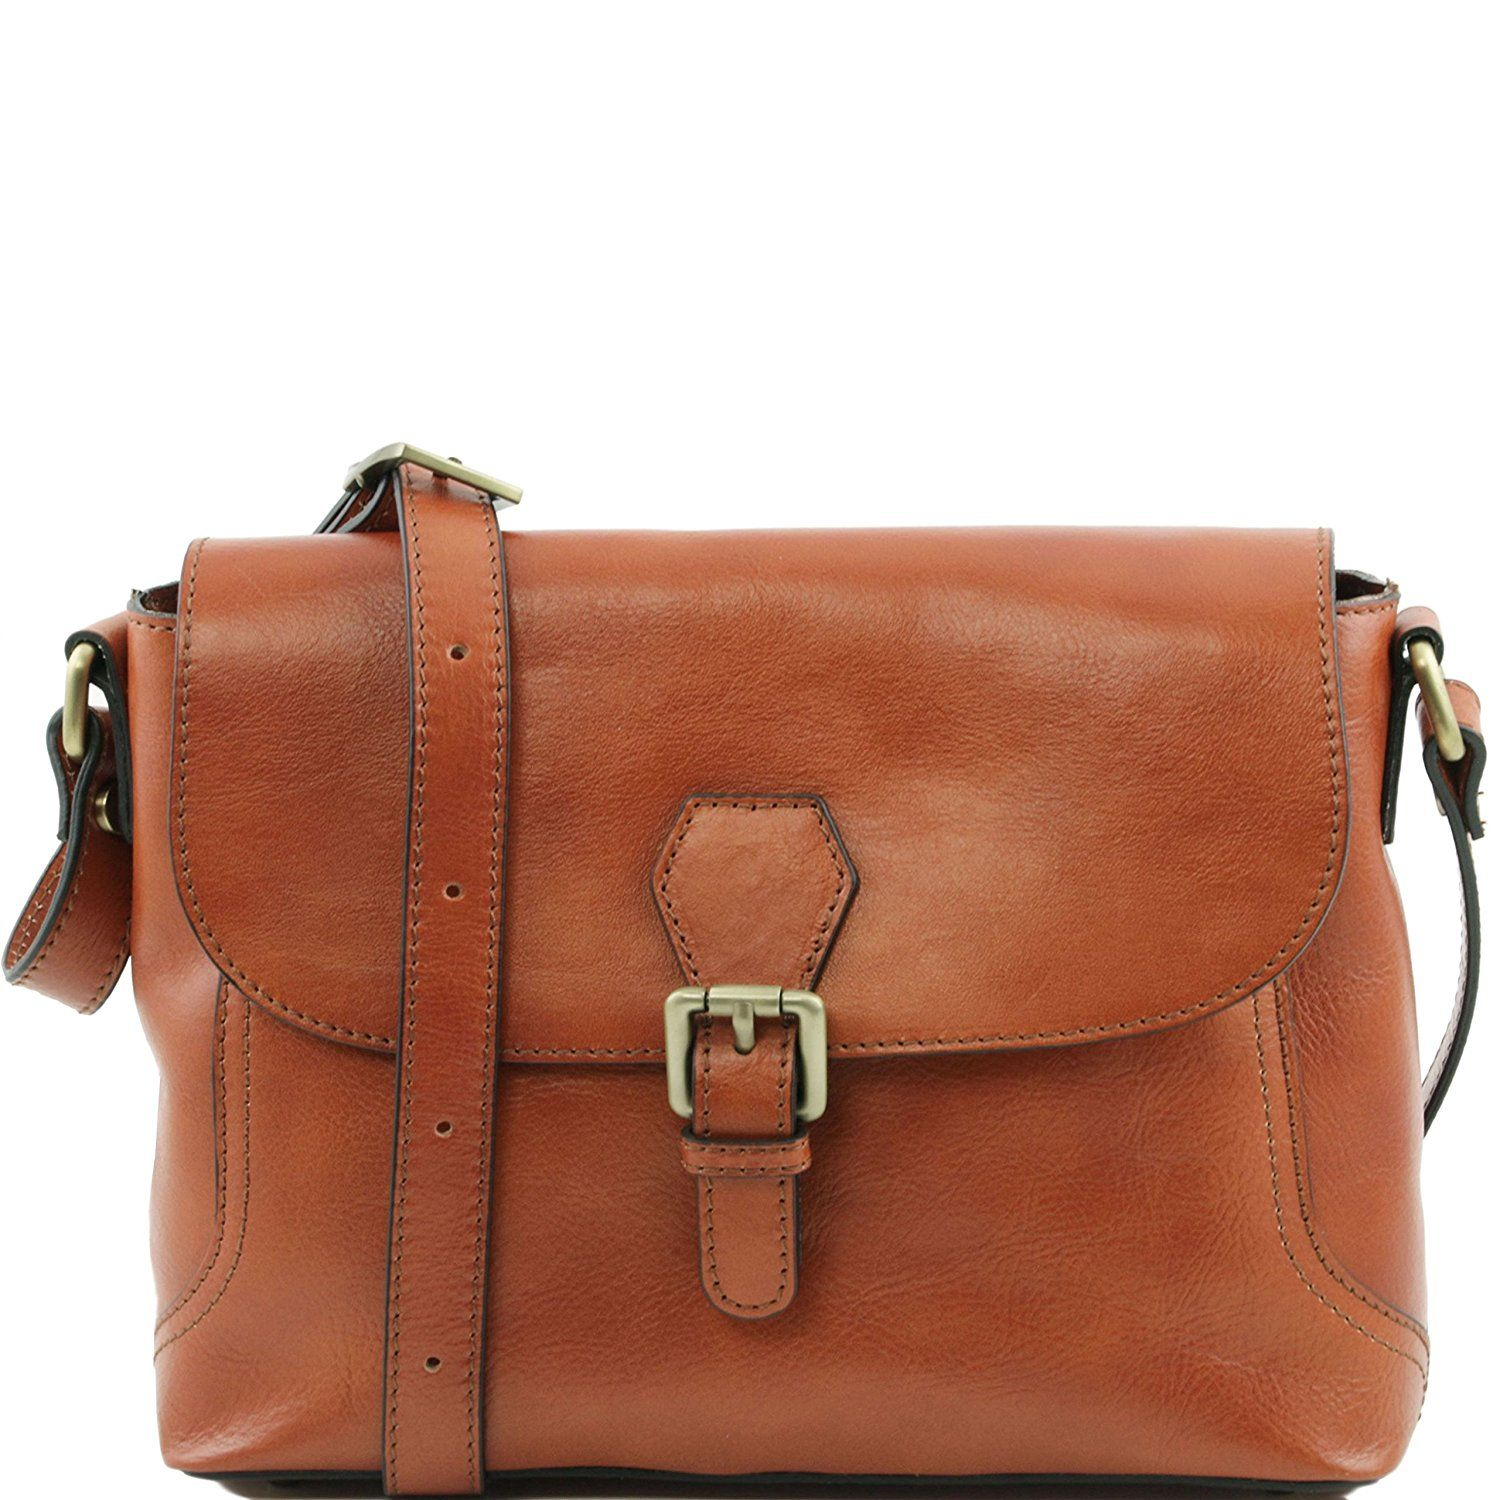 Tuscany Leather Jody - Leather shoulder bag with flap Red Leather shoulder bags: Amazon.co.uk: Luggage